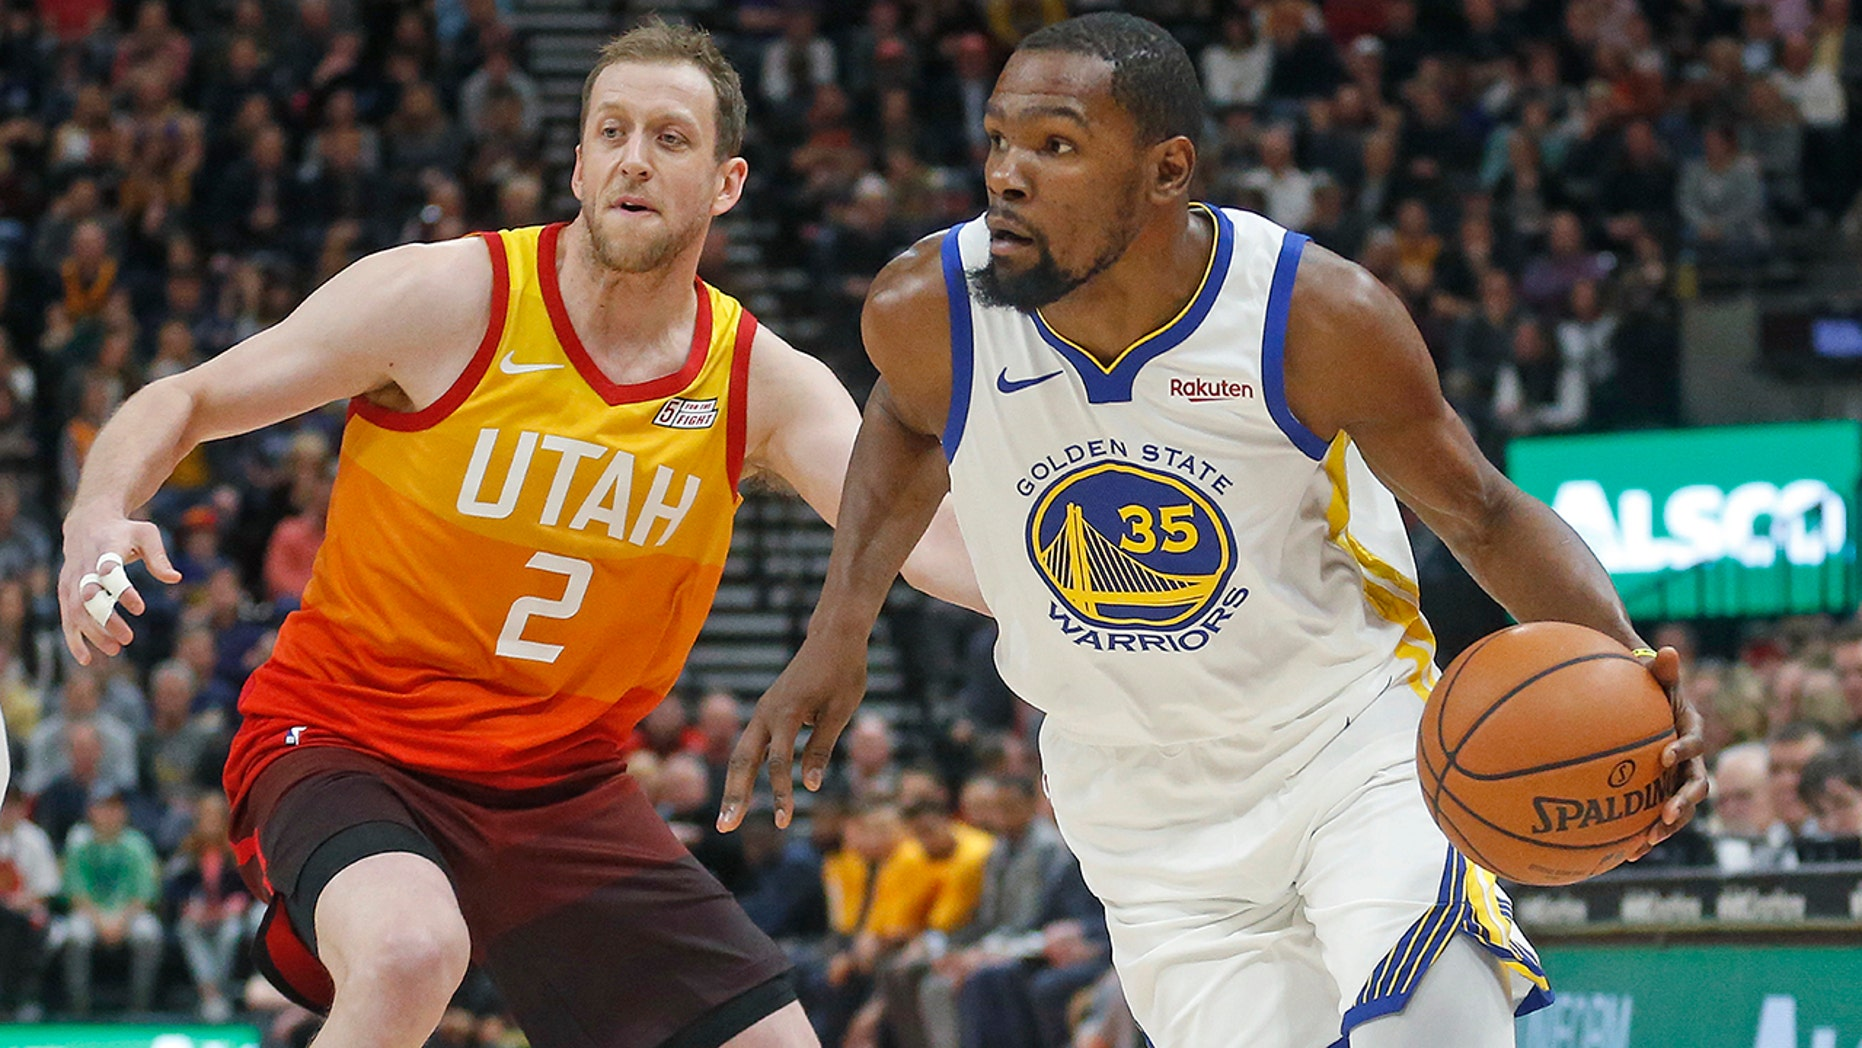 Golden State Warriors forward Kevin Durant (35) drives around Utah Jazz forward Joe Ingles (2) in the first half during an NBA basketball game Wednesday Dec. 19, 2018, in Salt Lake City. (Associated Press)